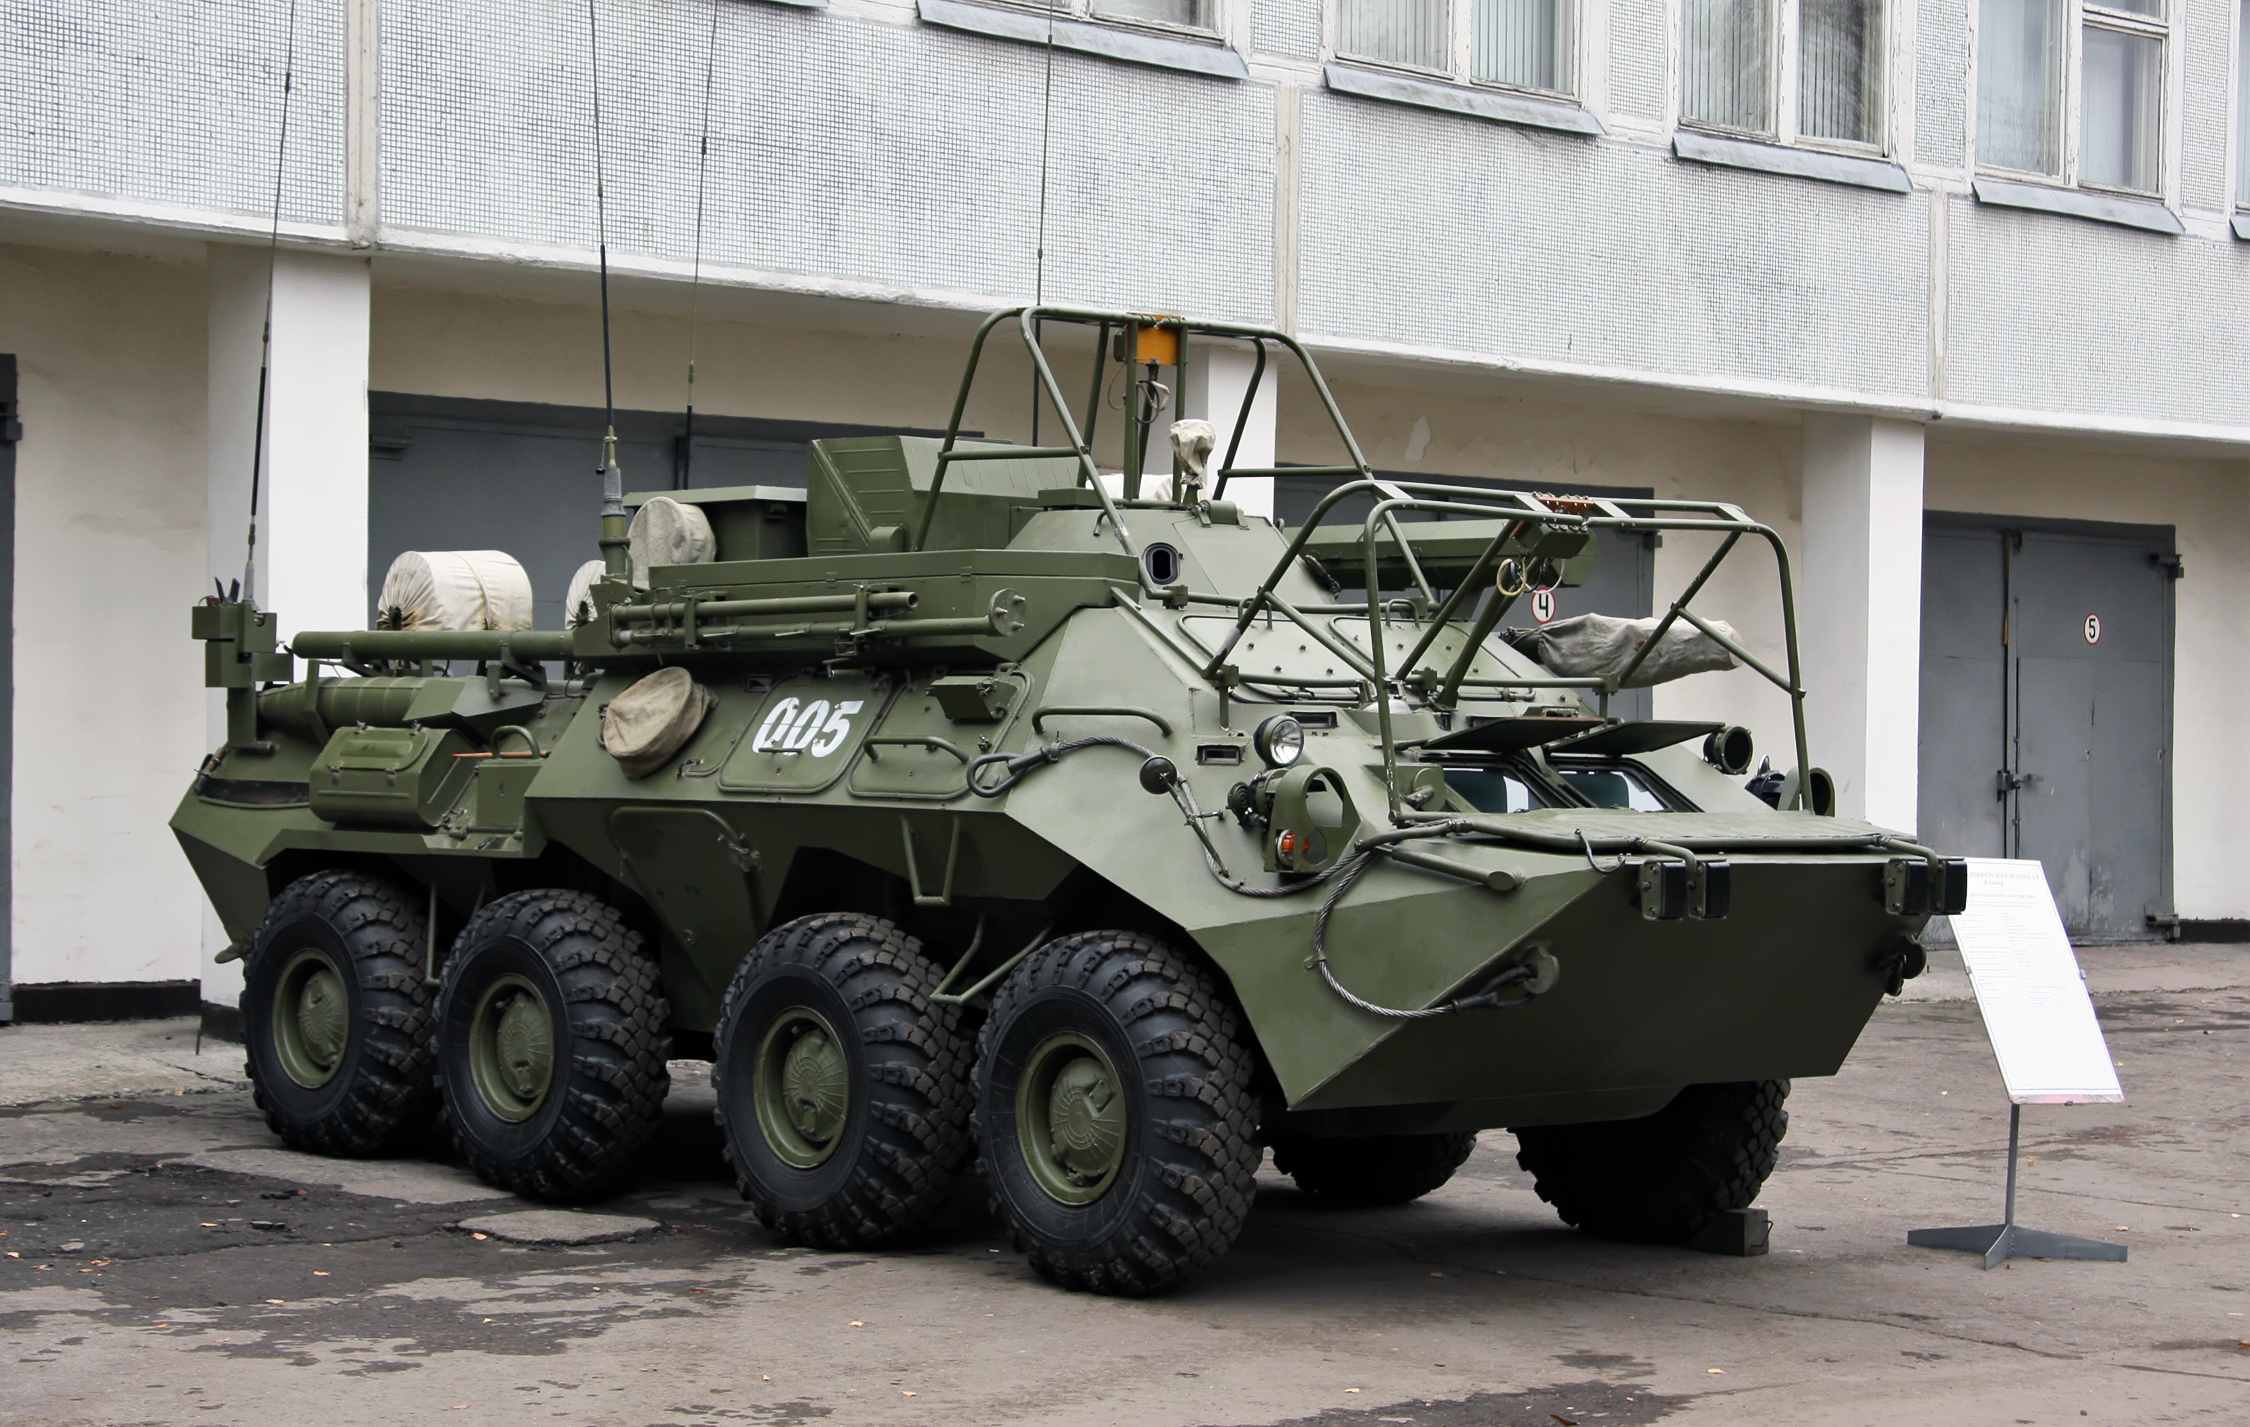 The 74th Guards Motorized Rifle Brigade received the first upgraded BMP-2M with Berehok module 95